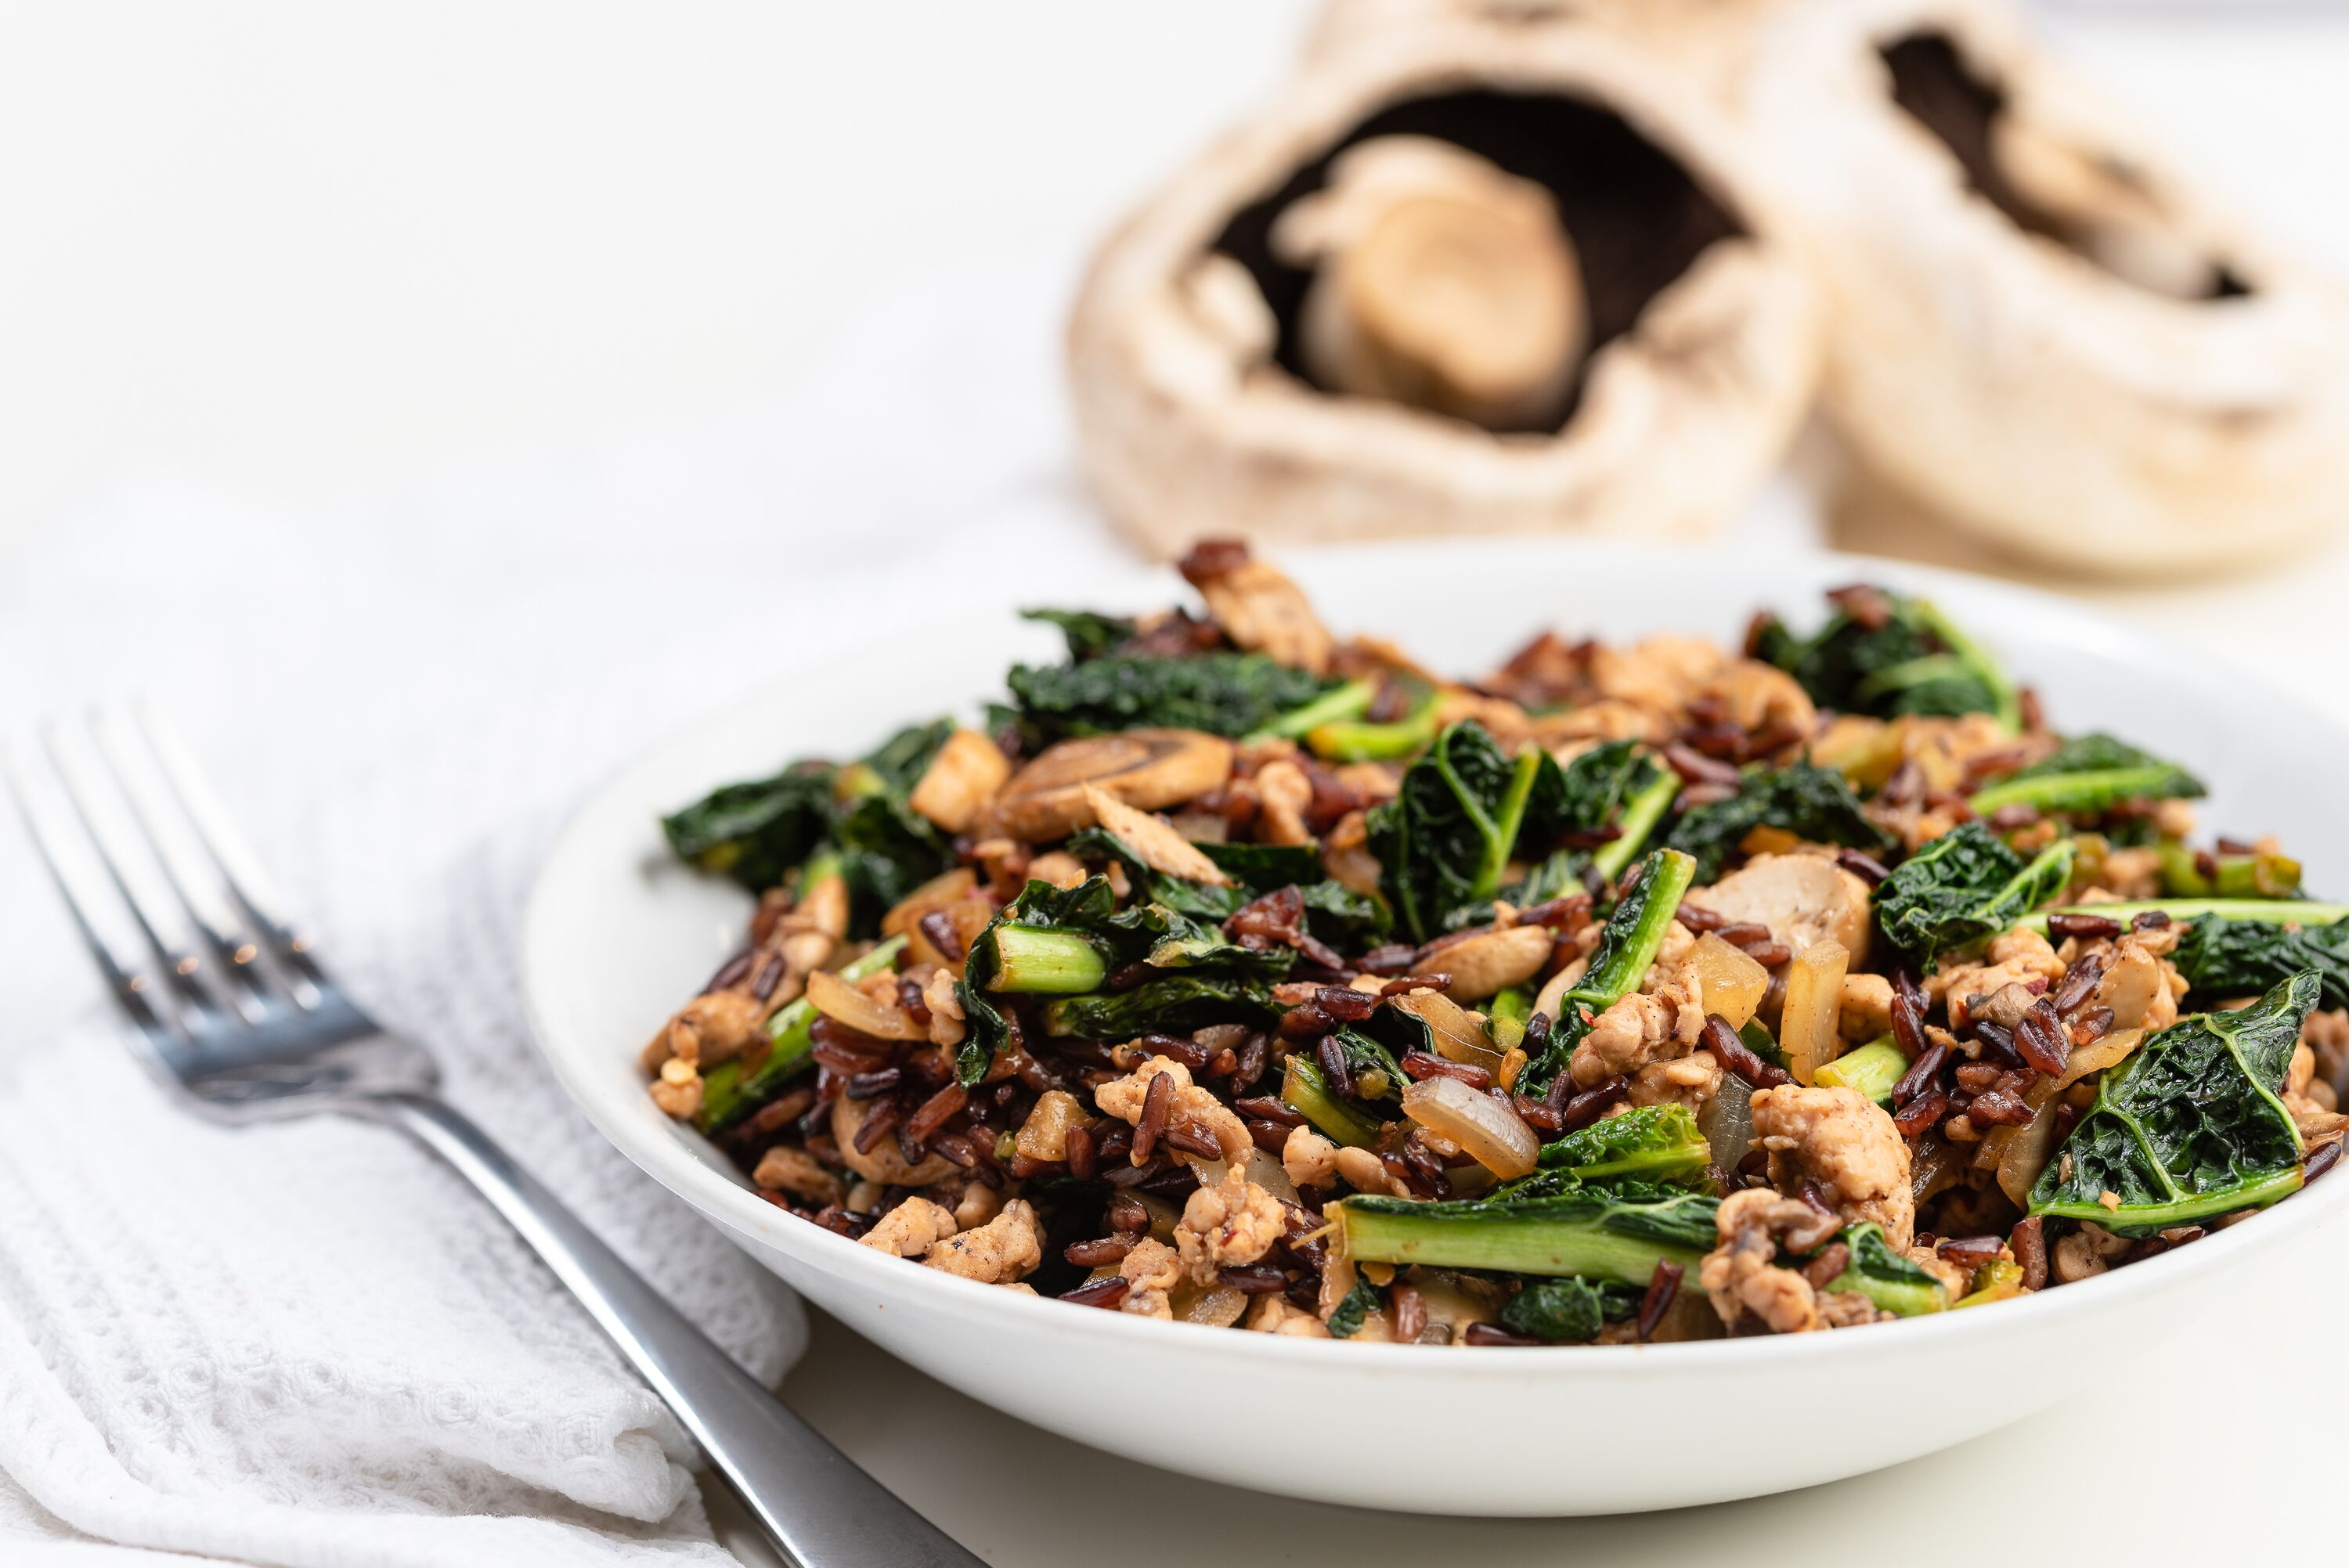 Turkey, Black Rice and Kale Stir Fry